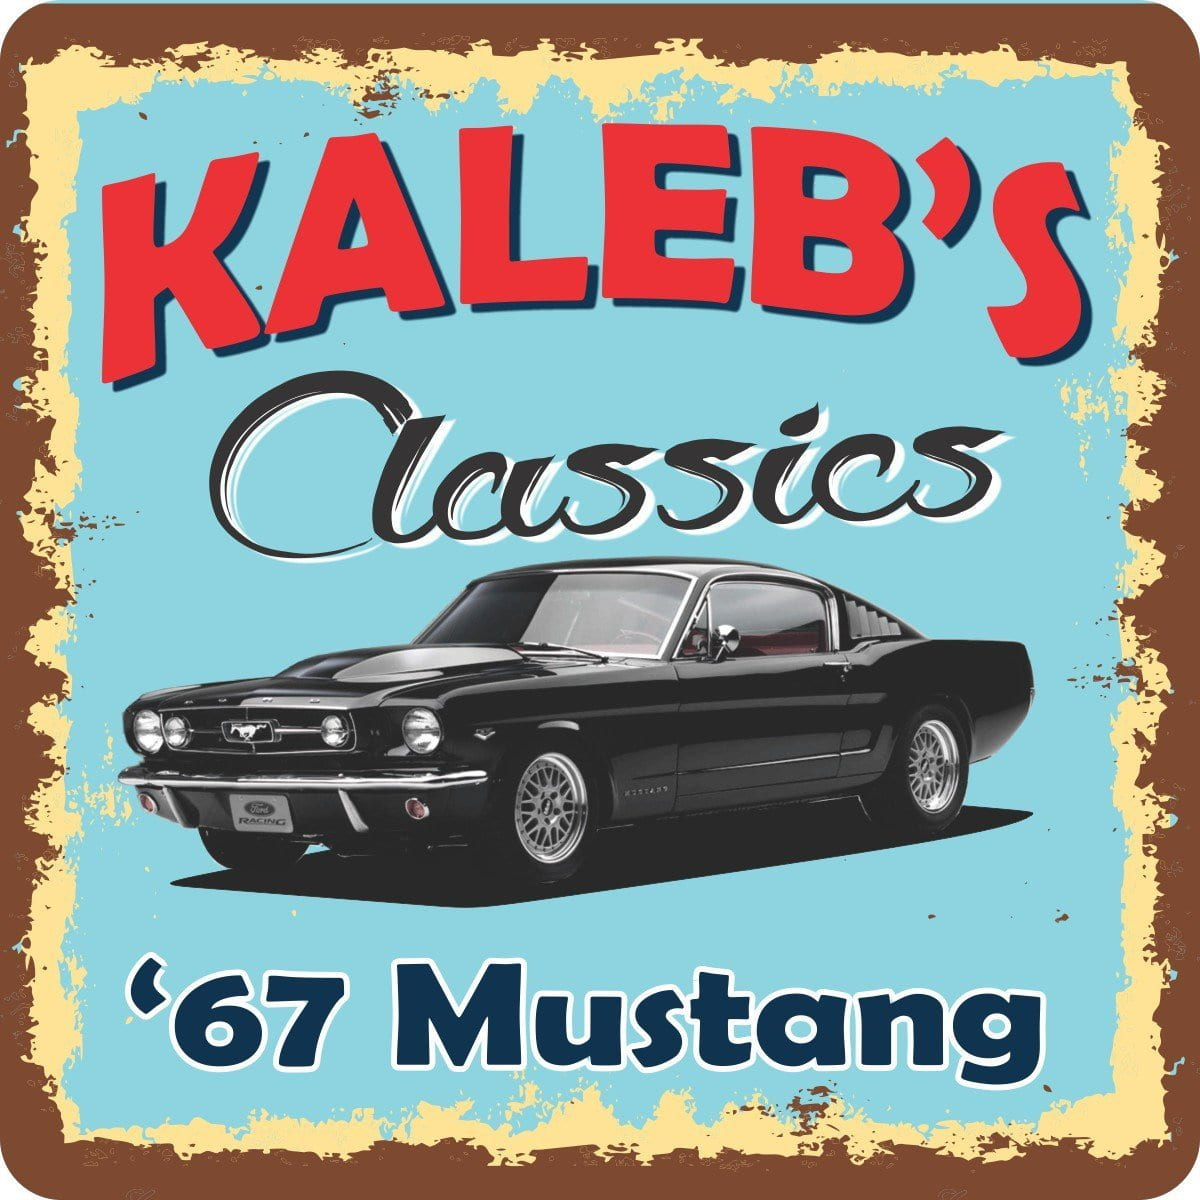 1967 Mustang Classic Car Personalized Sign With Retro Font Aged Border Blue Background